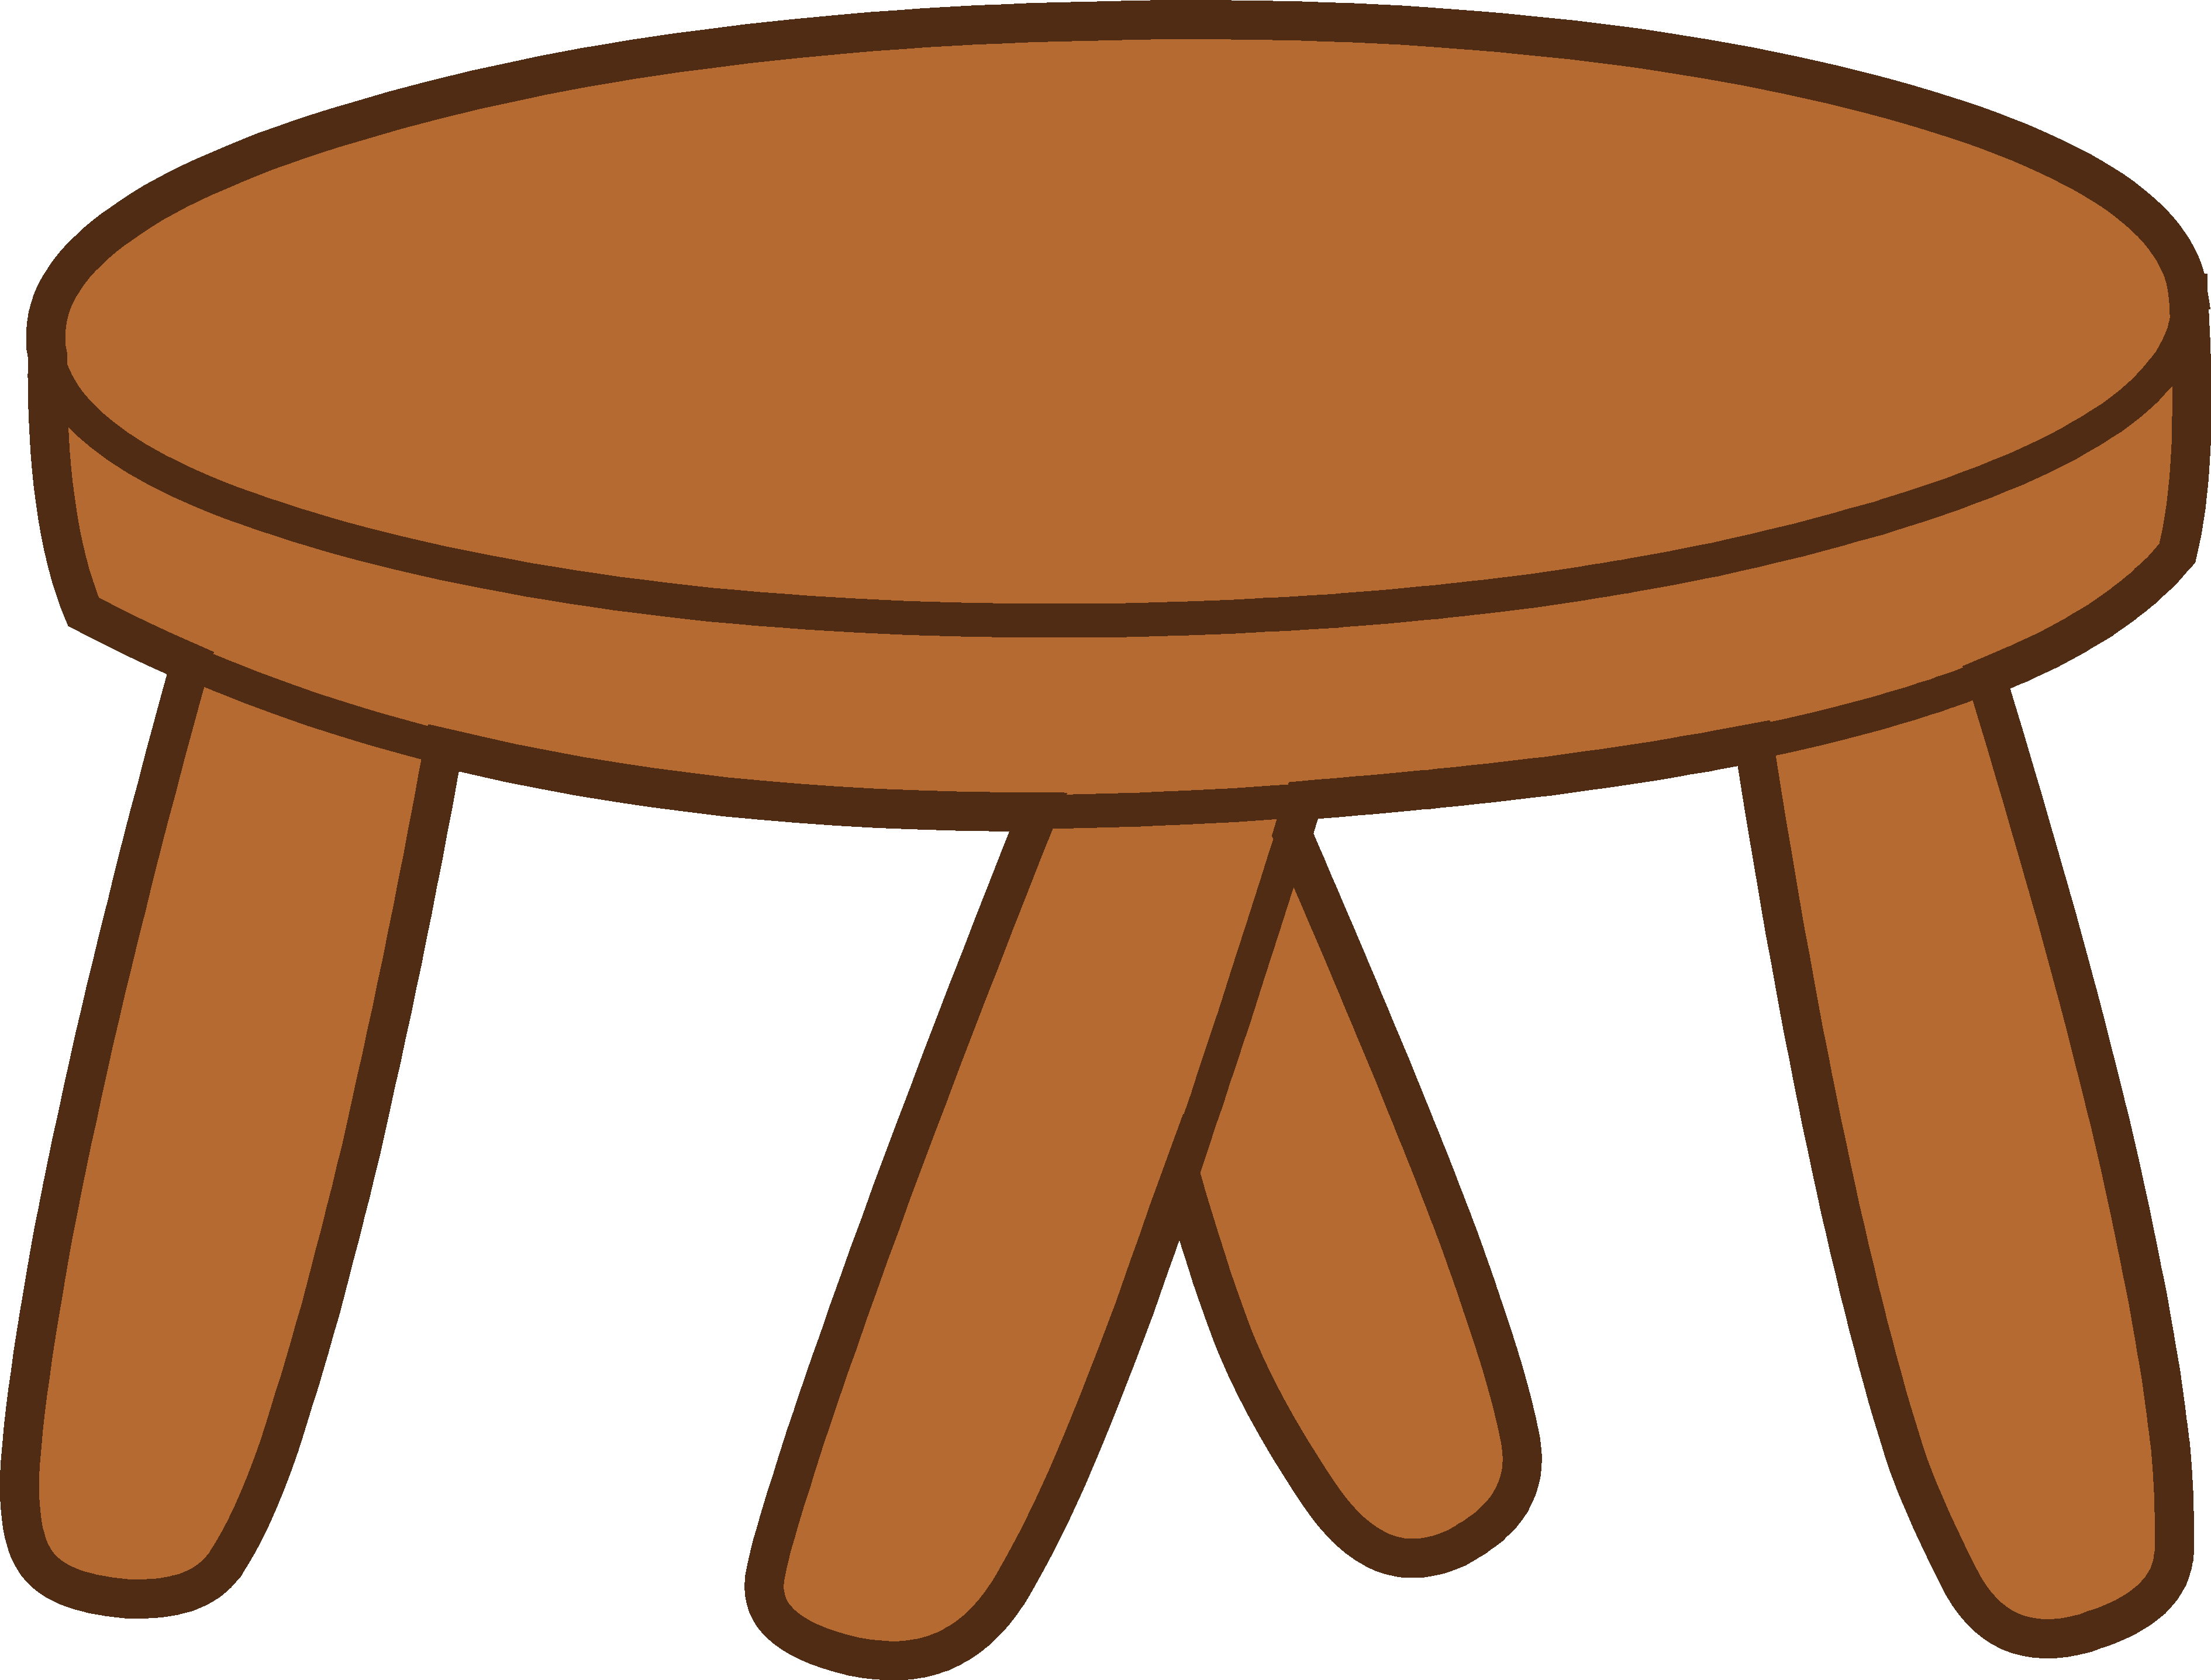 Furniture clipart wood furniture Wooden Free Foot Clip Clipart